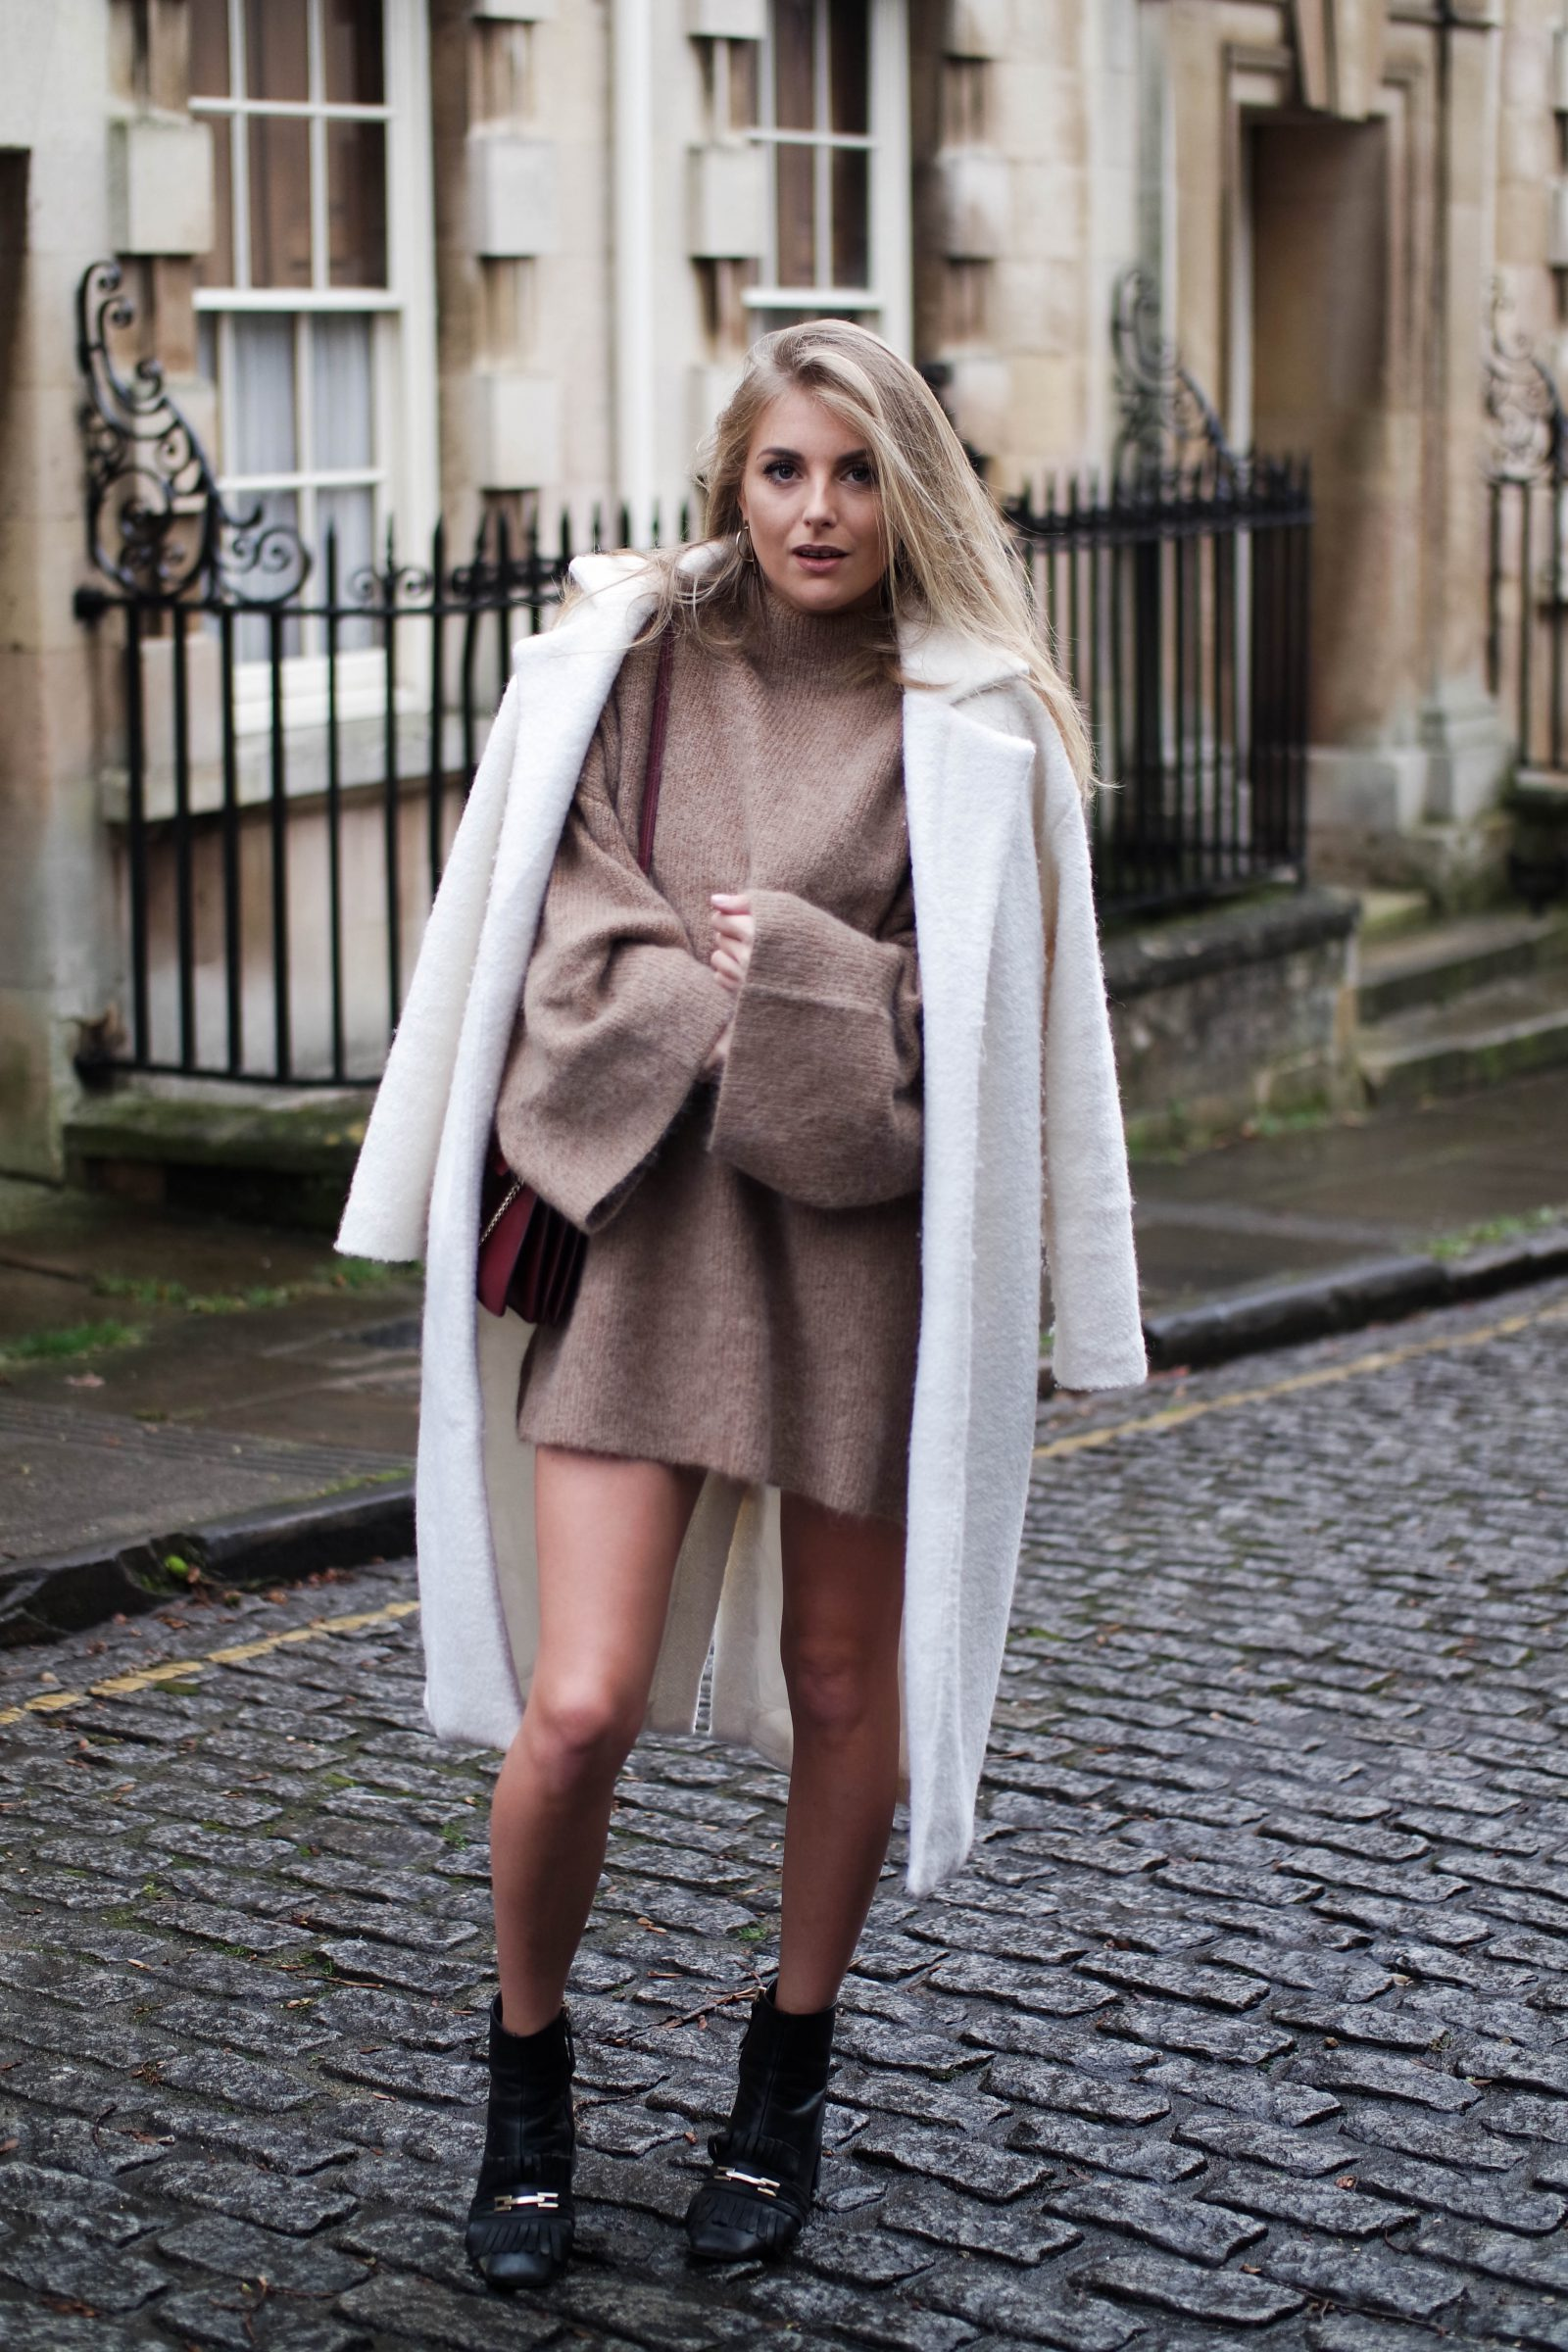 Coat-Collection-Striped-White-Misguided-Coat